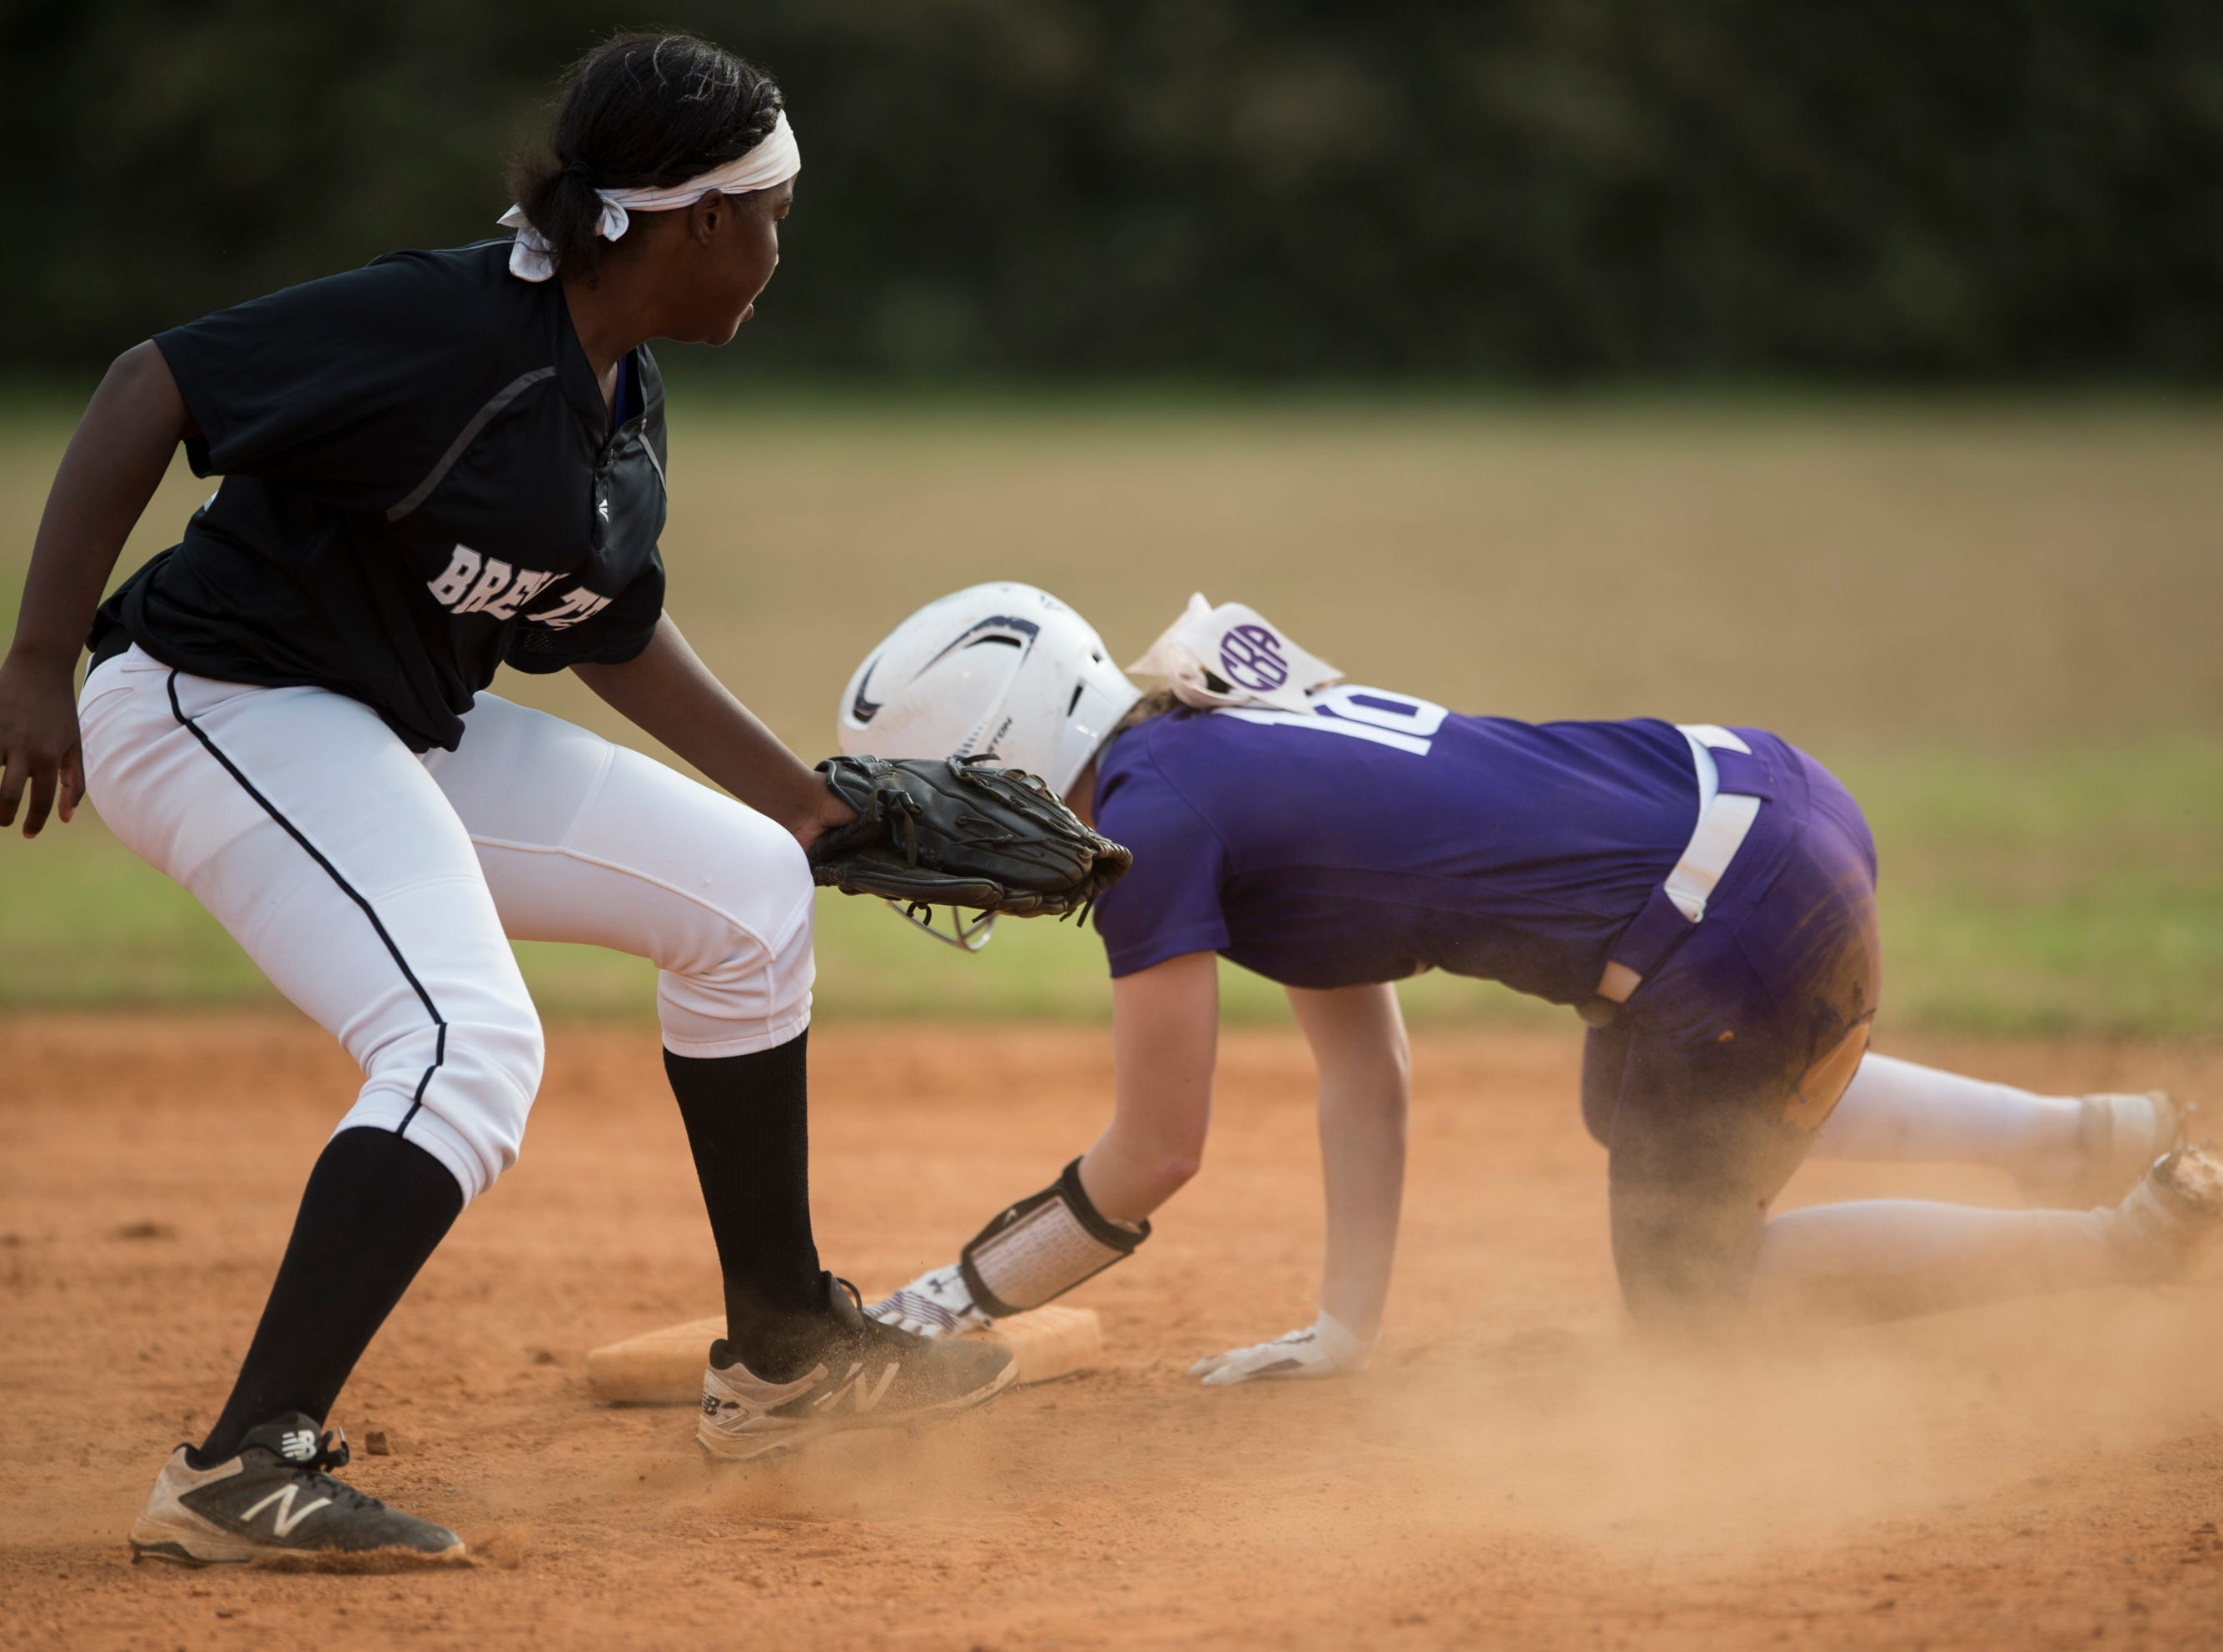 Tallassee's Chloe Baynes (18) slides safely into second base past Brew Tech's Mackenzie Wilson (11) at Thompson Park in Montgomery, Ala., on Thursday, March 14, 2019. Tallassee defeated Brew Tech 7-0.